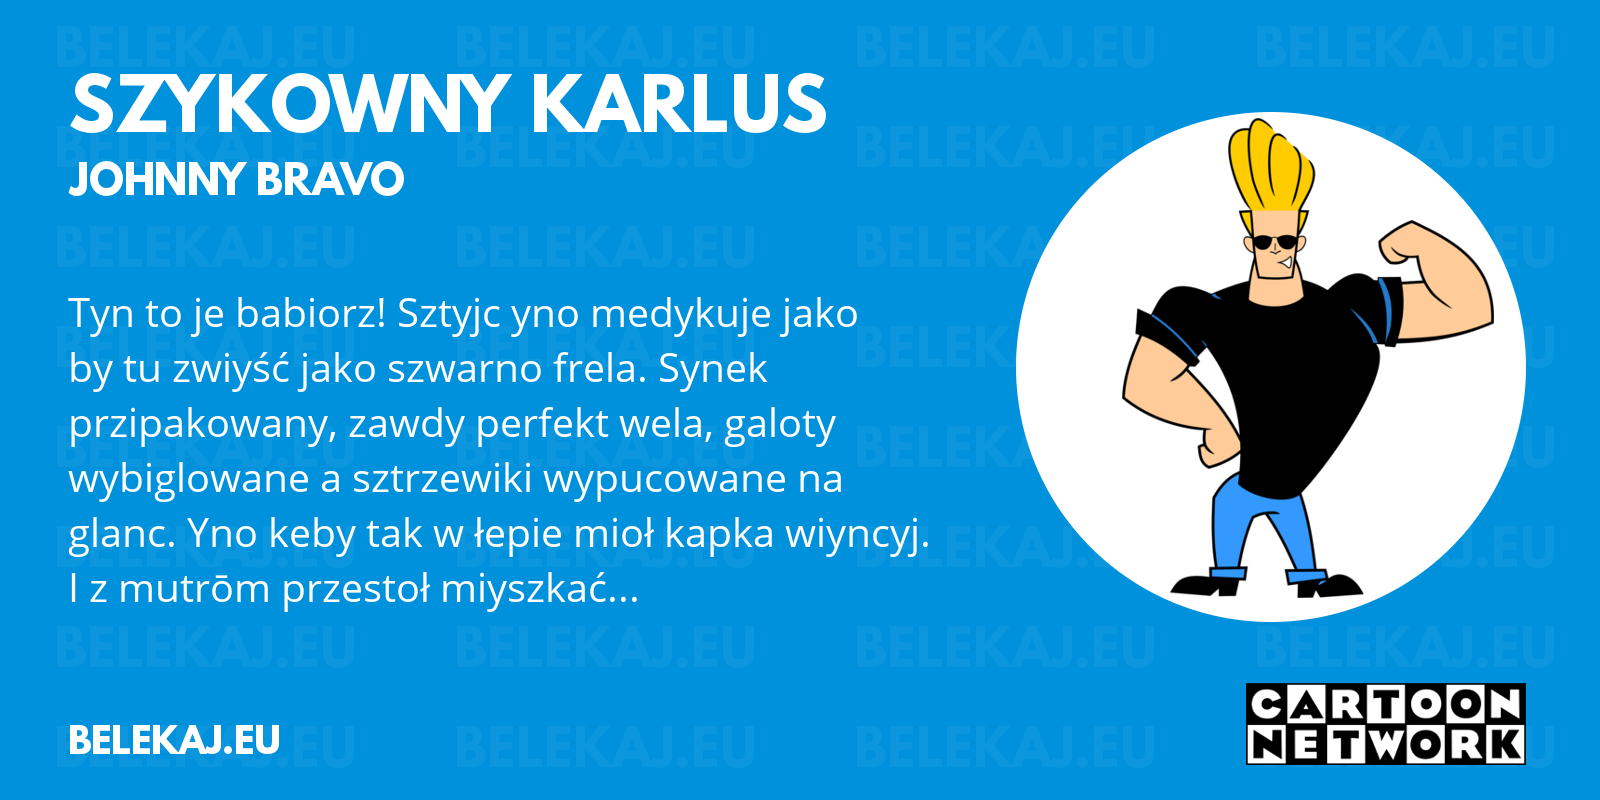 Johnny Bravo, Cartoon Network po śląsku - blog bele kaj